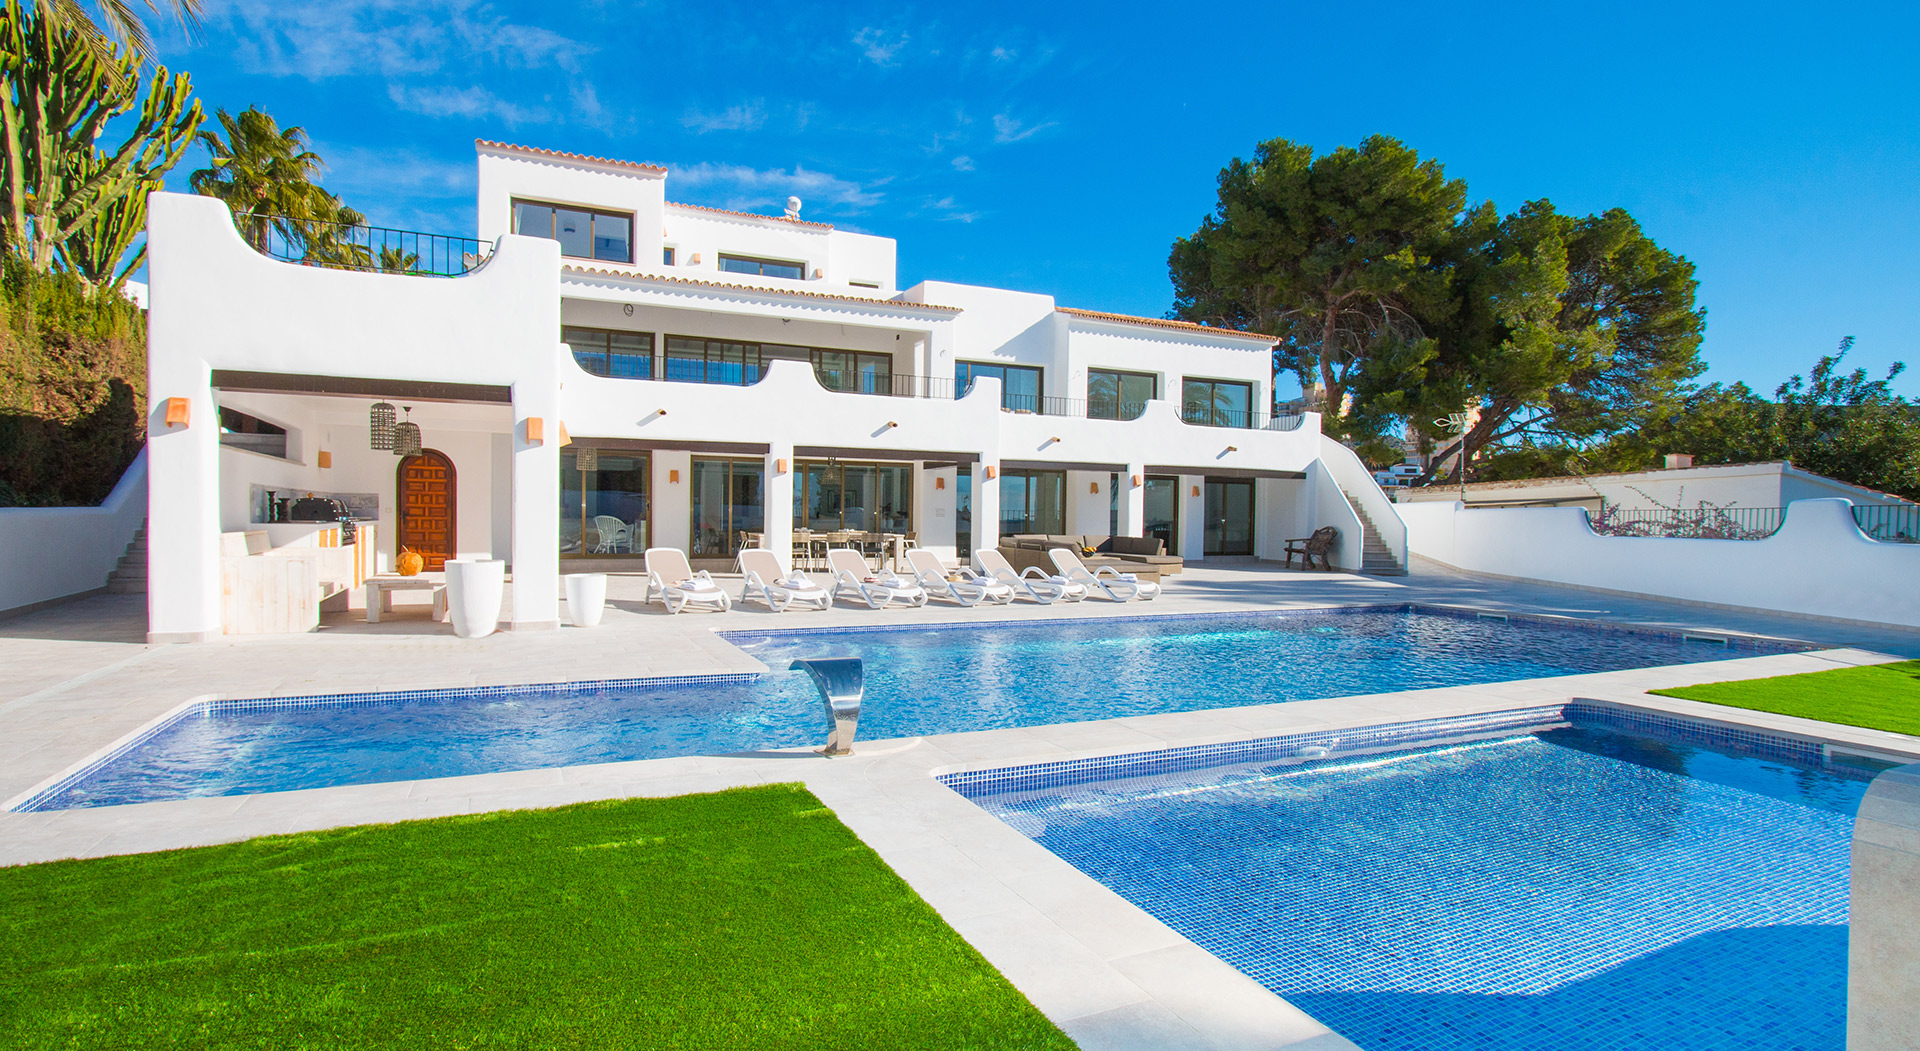 Accommodation in Alicante: A good investment.